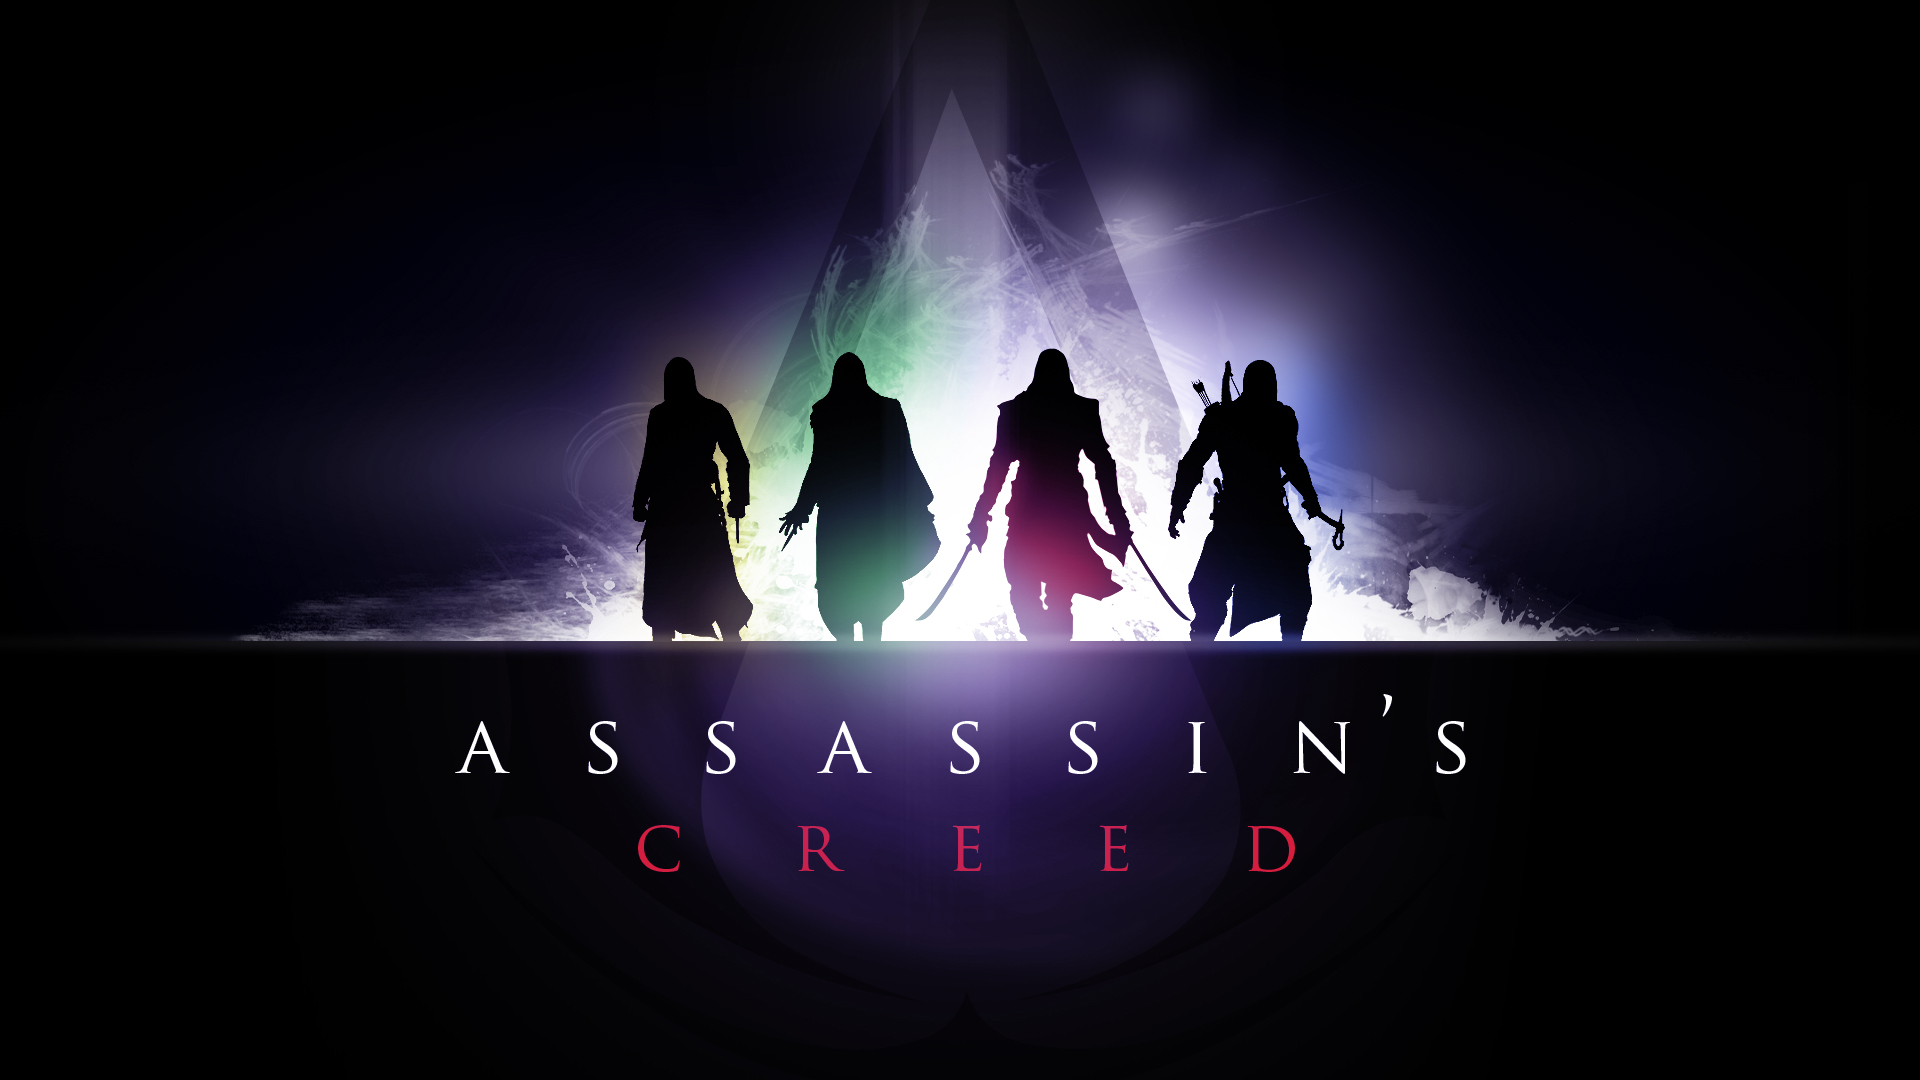 Symphony of Time - Assassin's Creed Wallpaper by RockLou